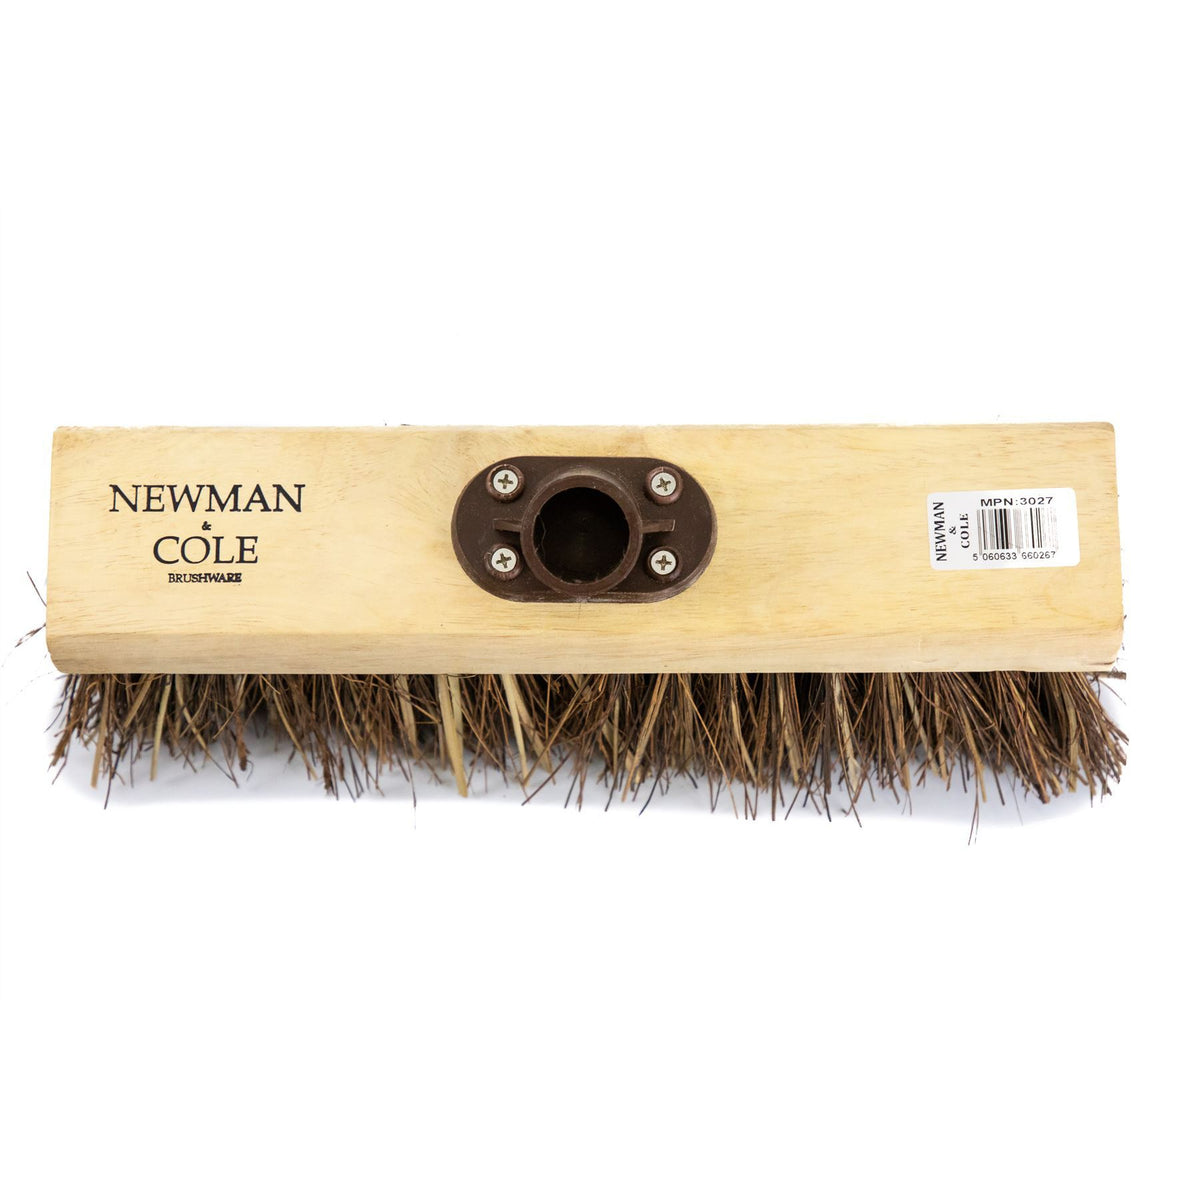 Newman And Cole 13 Quot Bass Amp Cane Flat Broom Head With